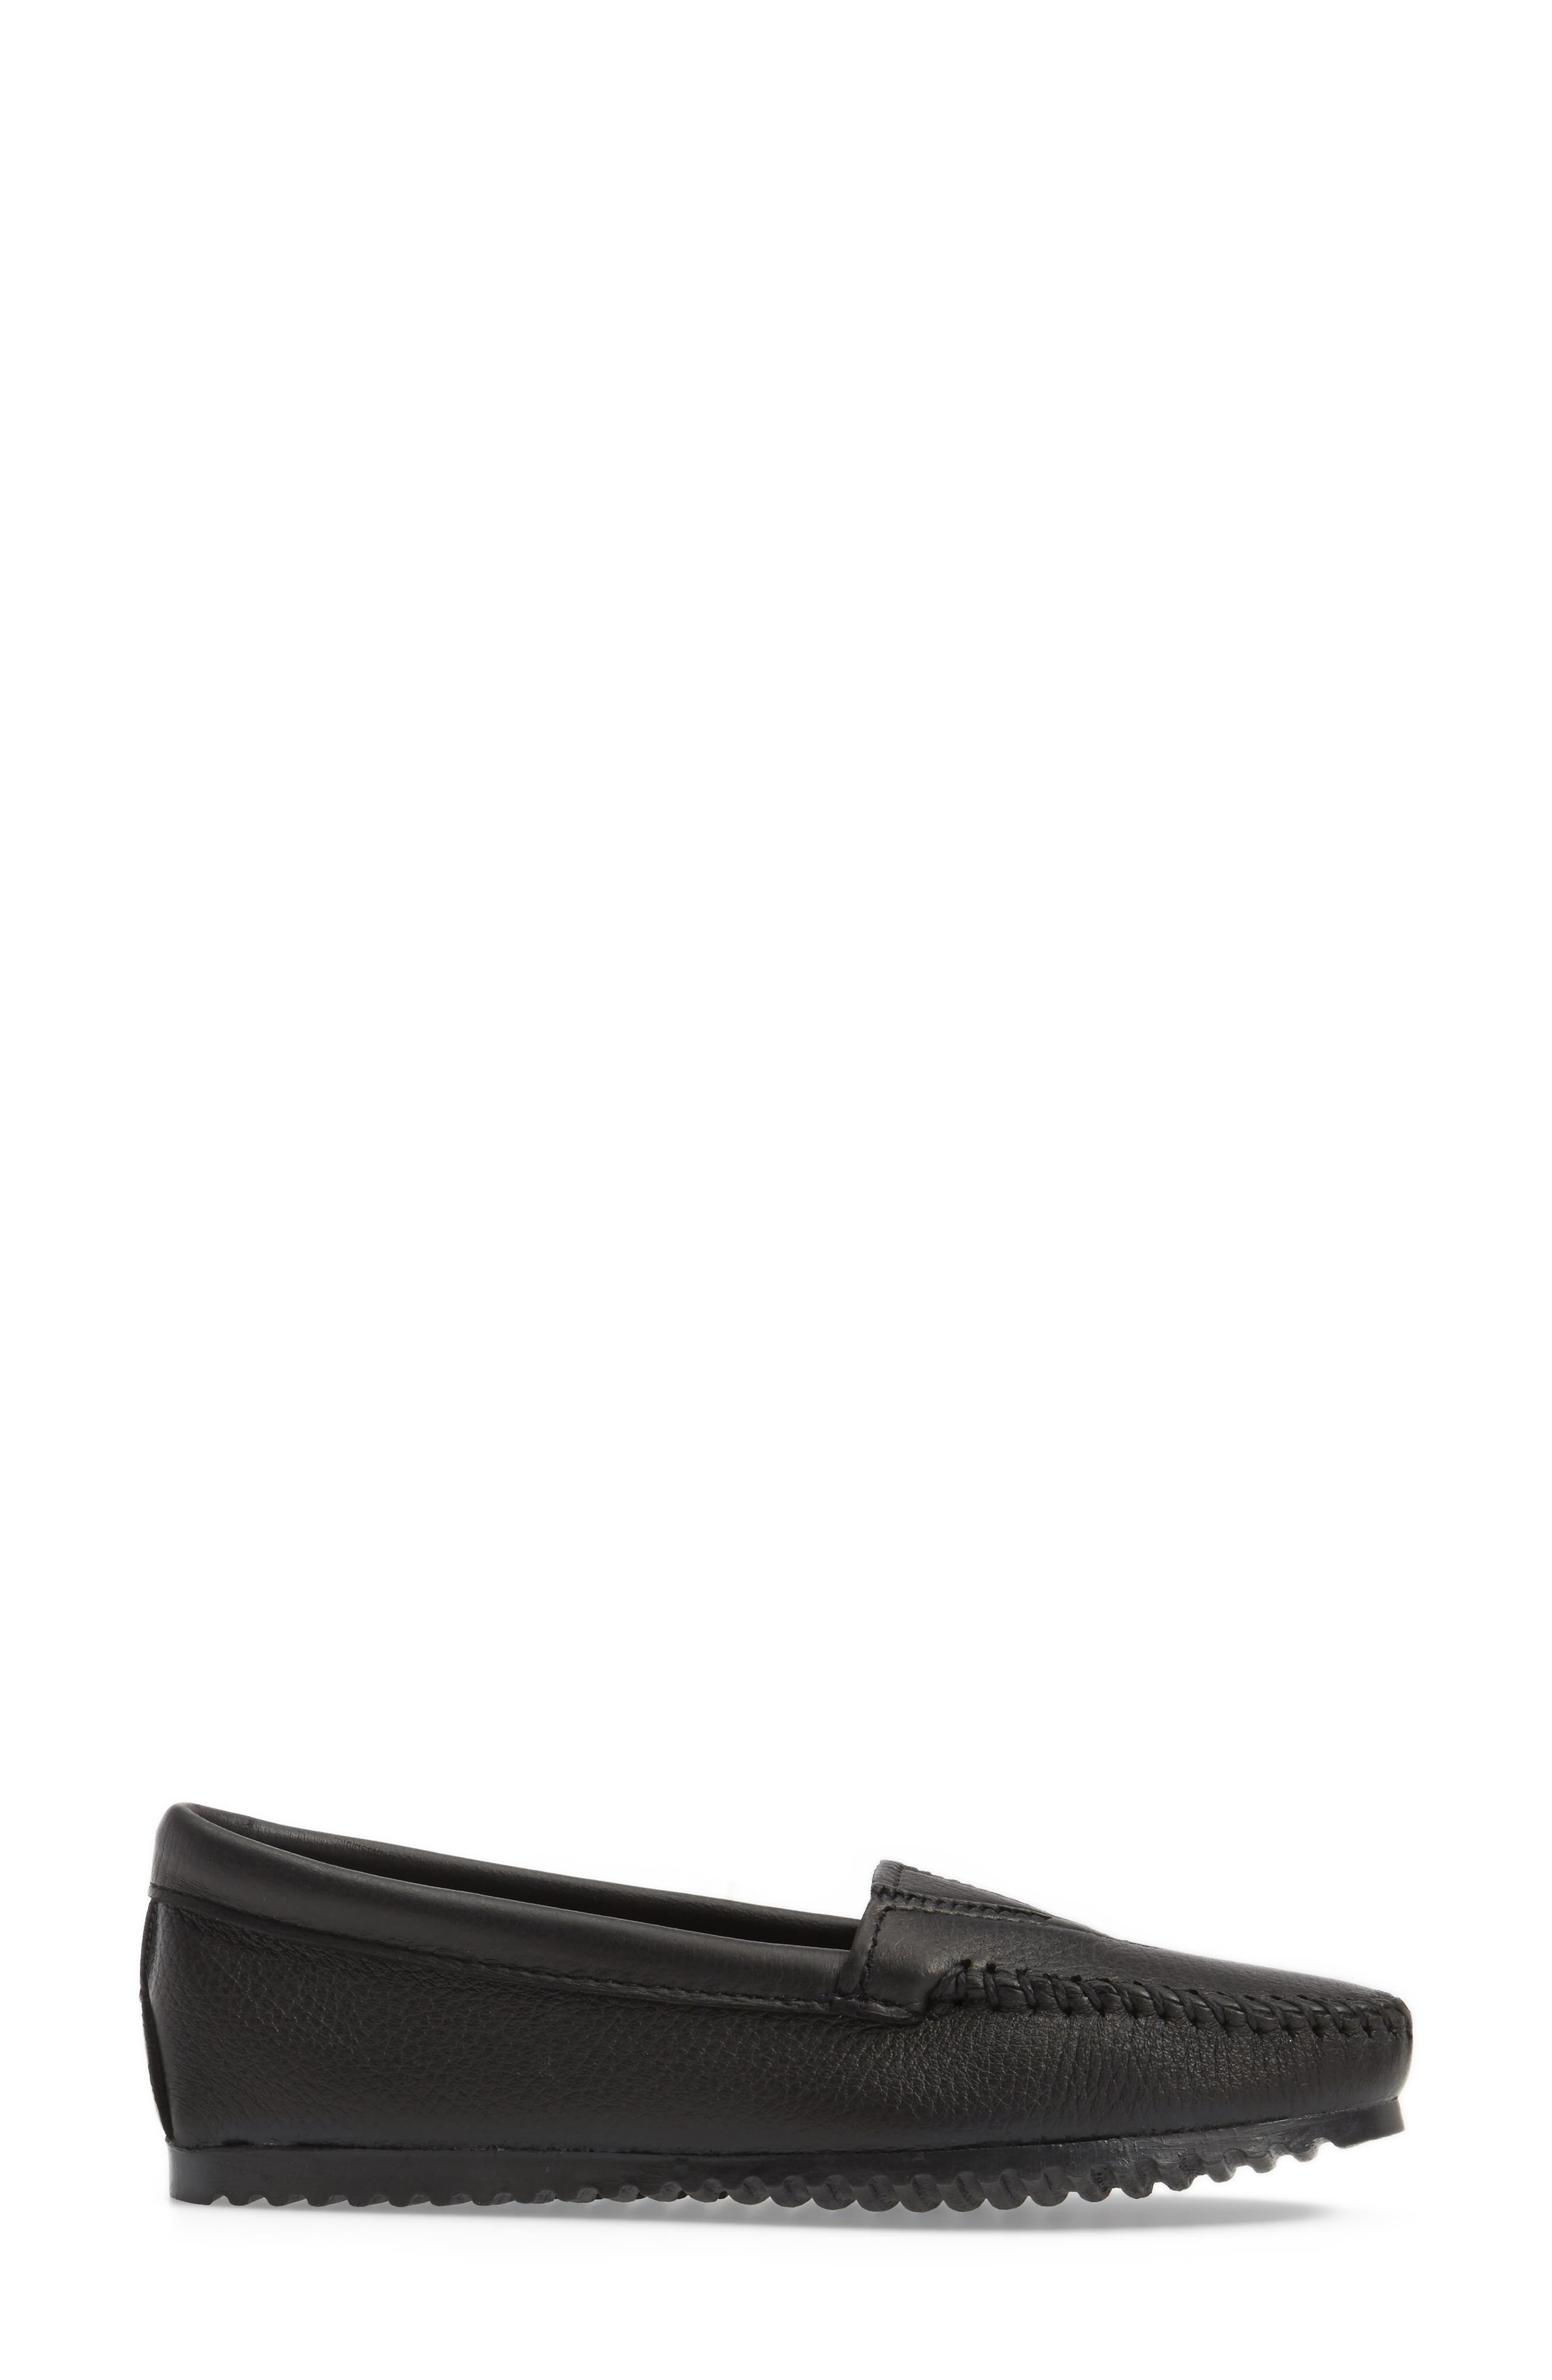 MINNETONKA, Moccasin, Alternate thumbnail 3, color, BLACK